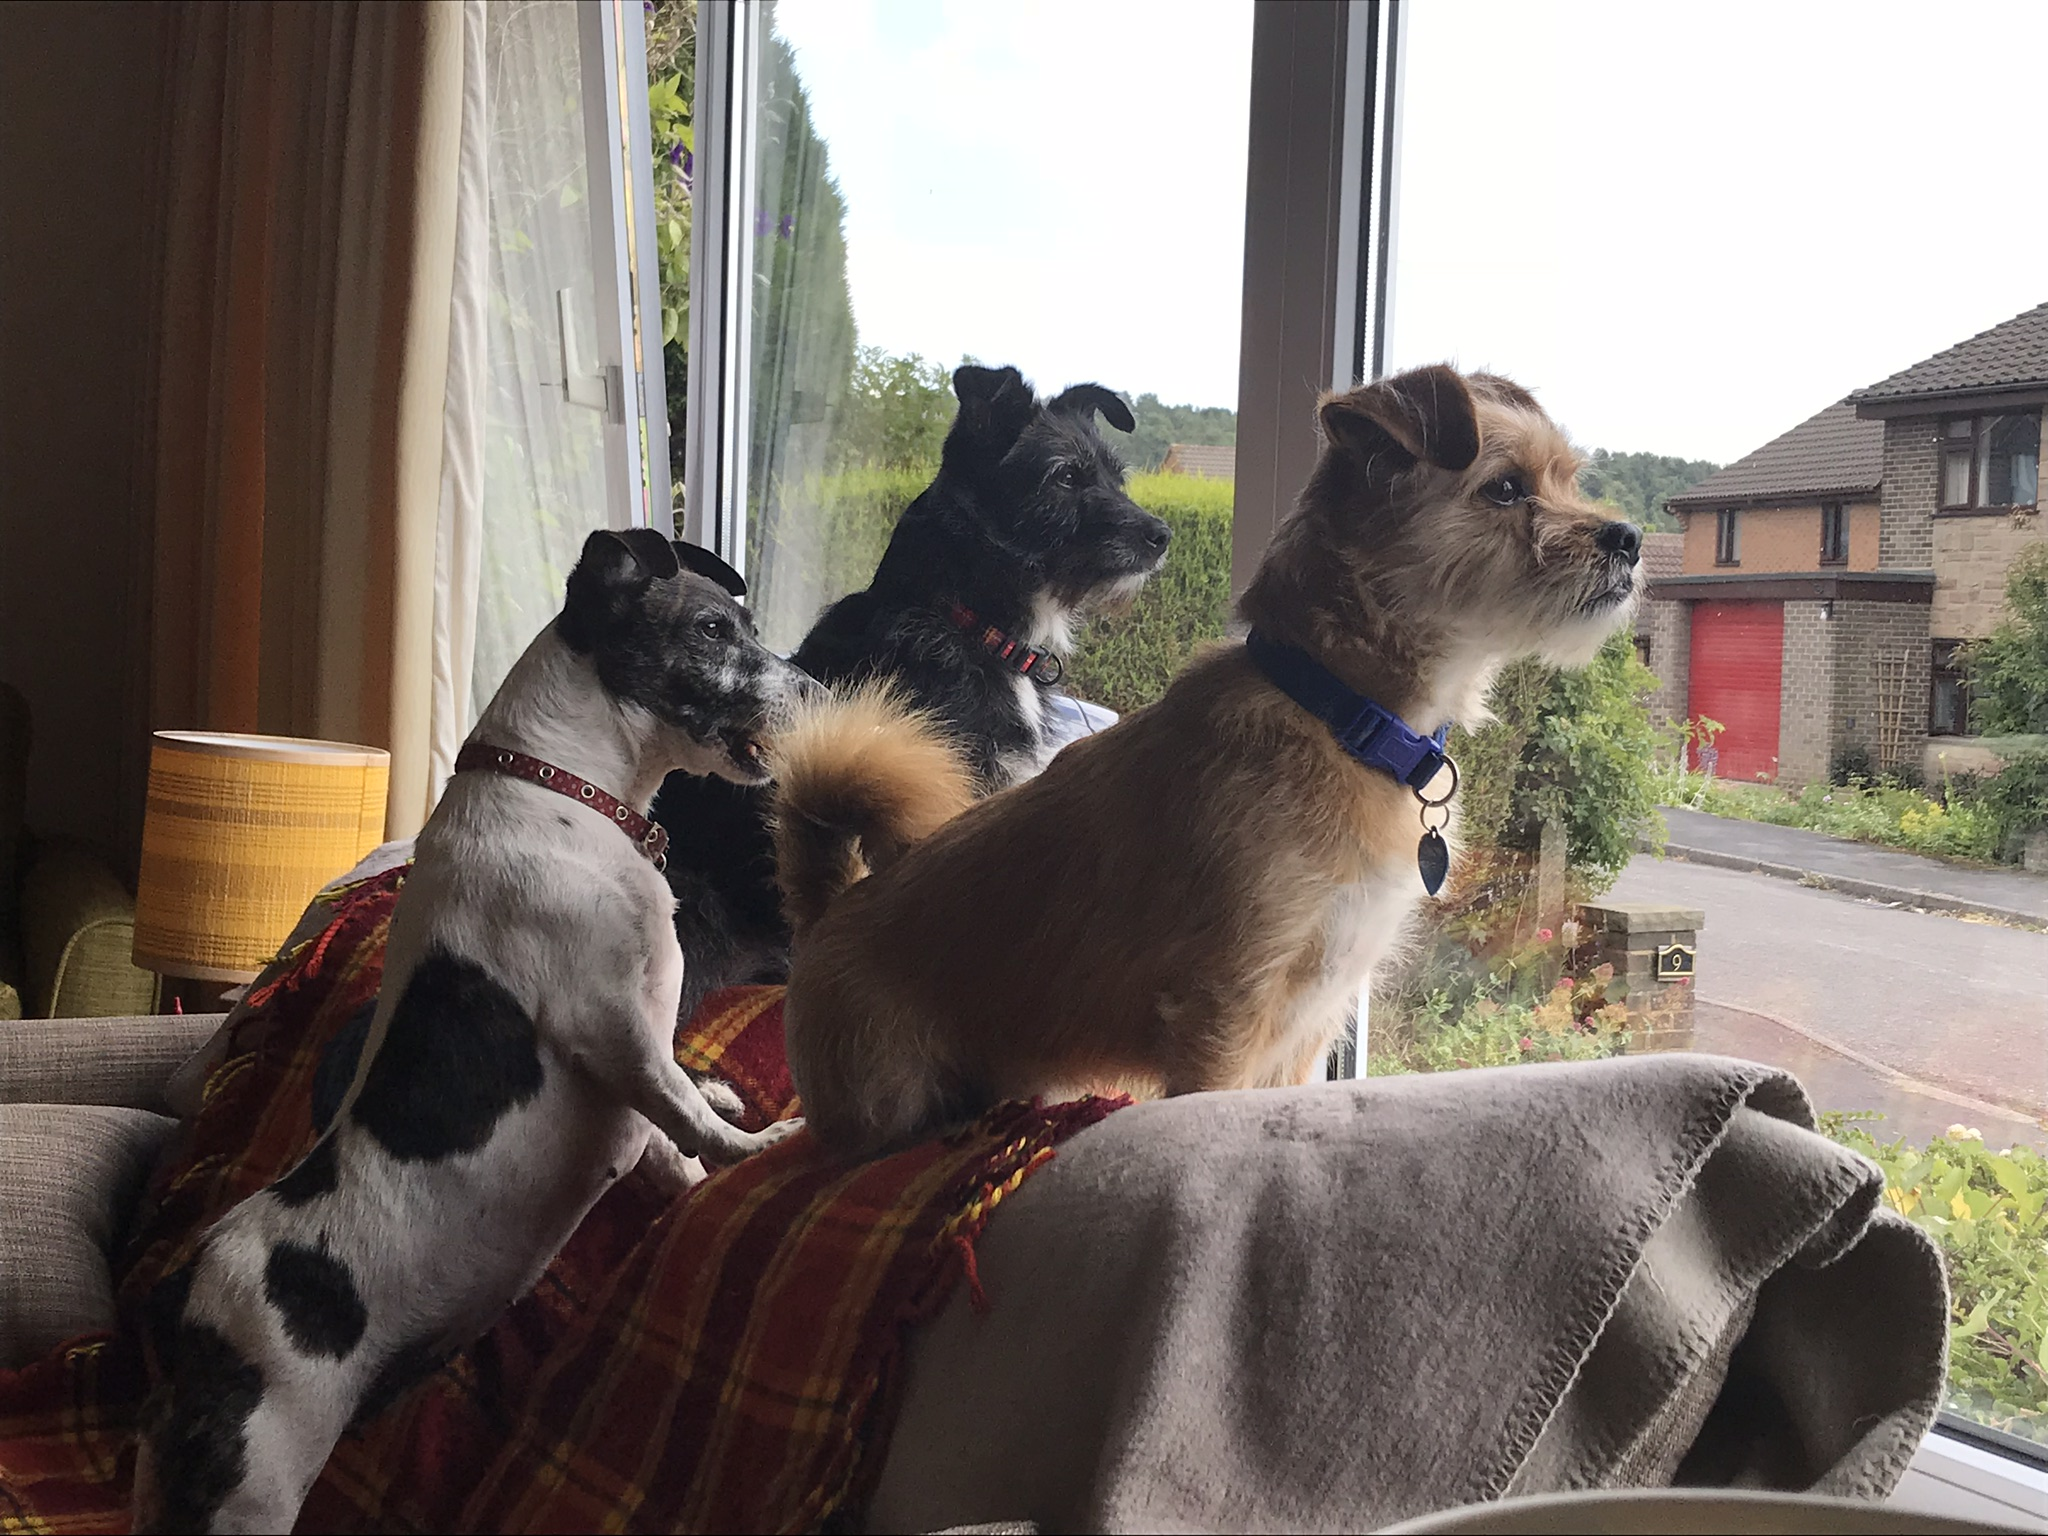 3 at the window.jpg